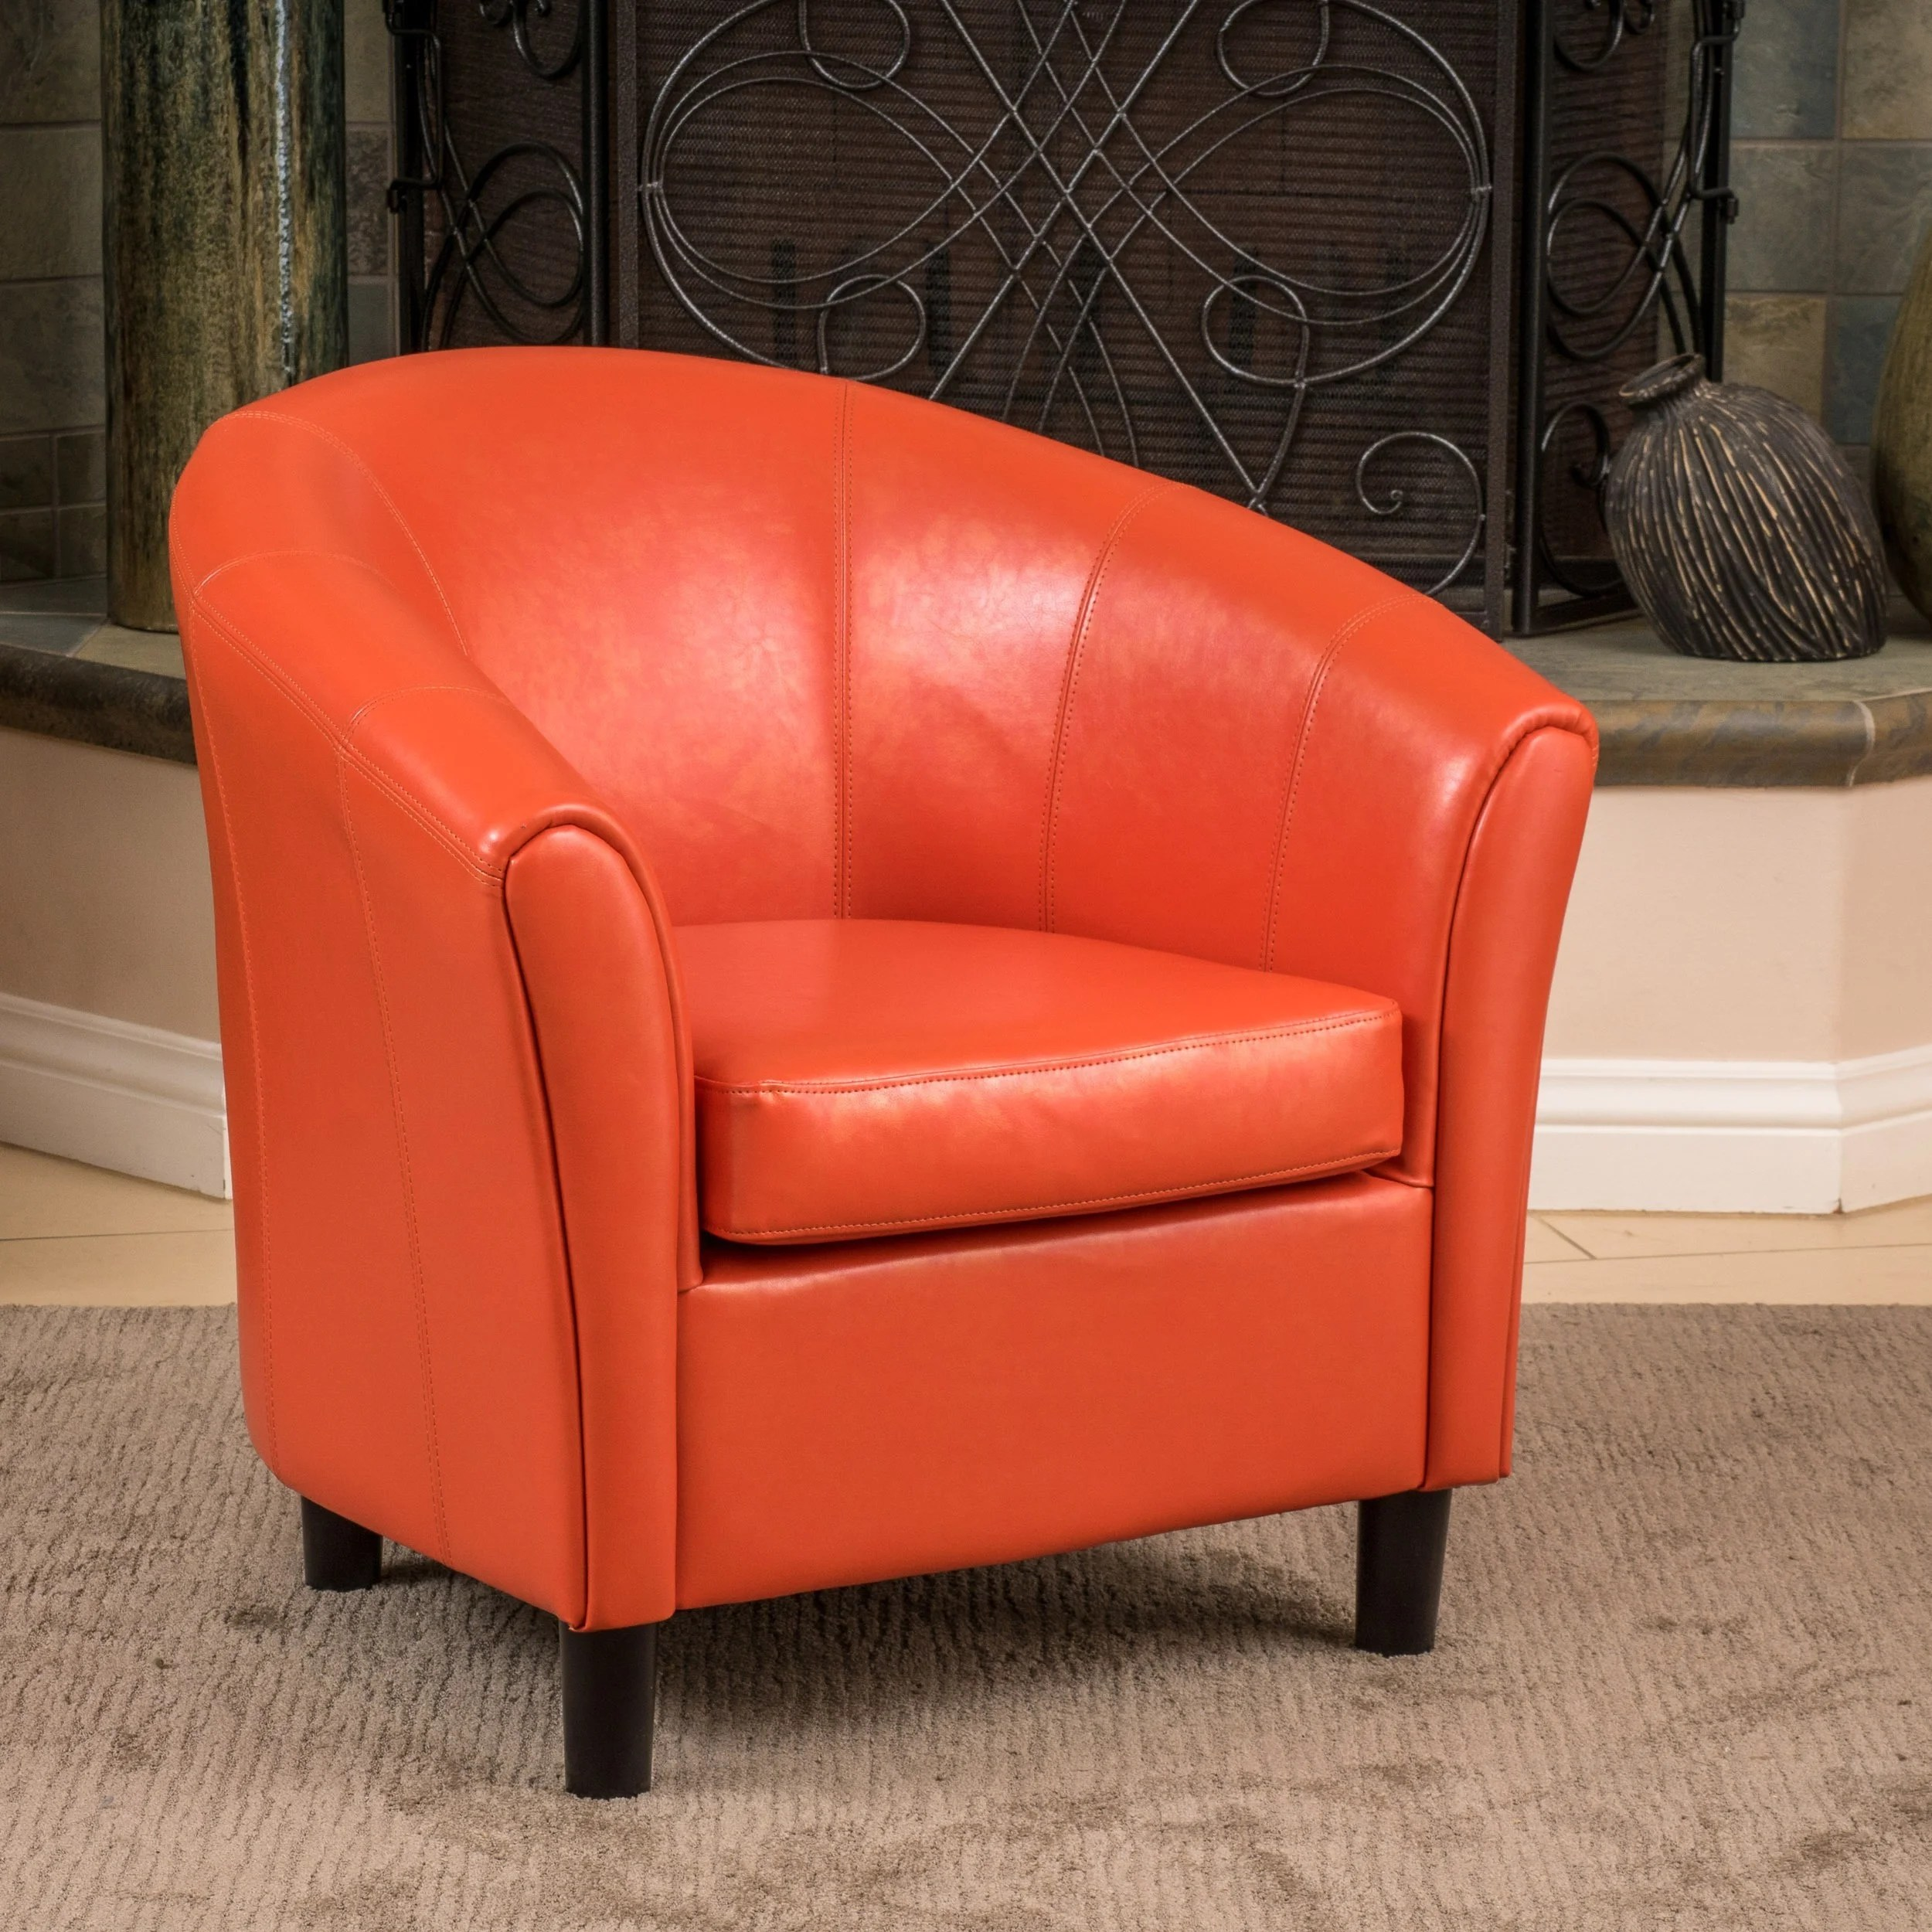 christopher knight club chair amazon lift chairs home napoli orange bonded leather